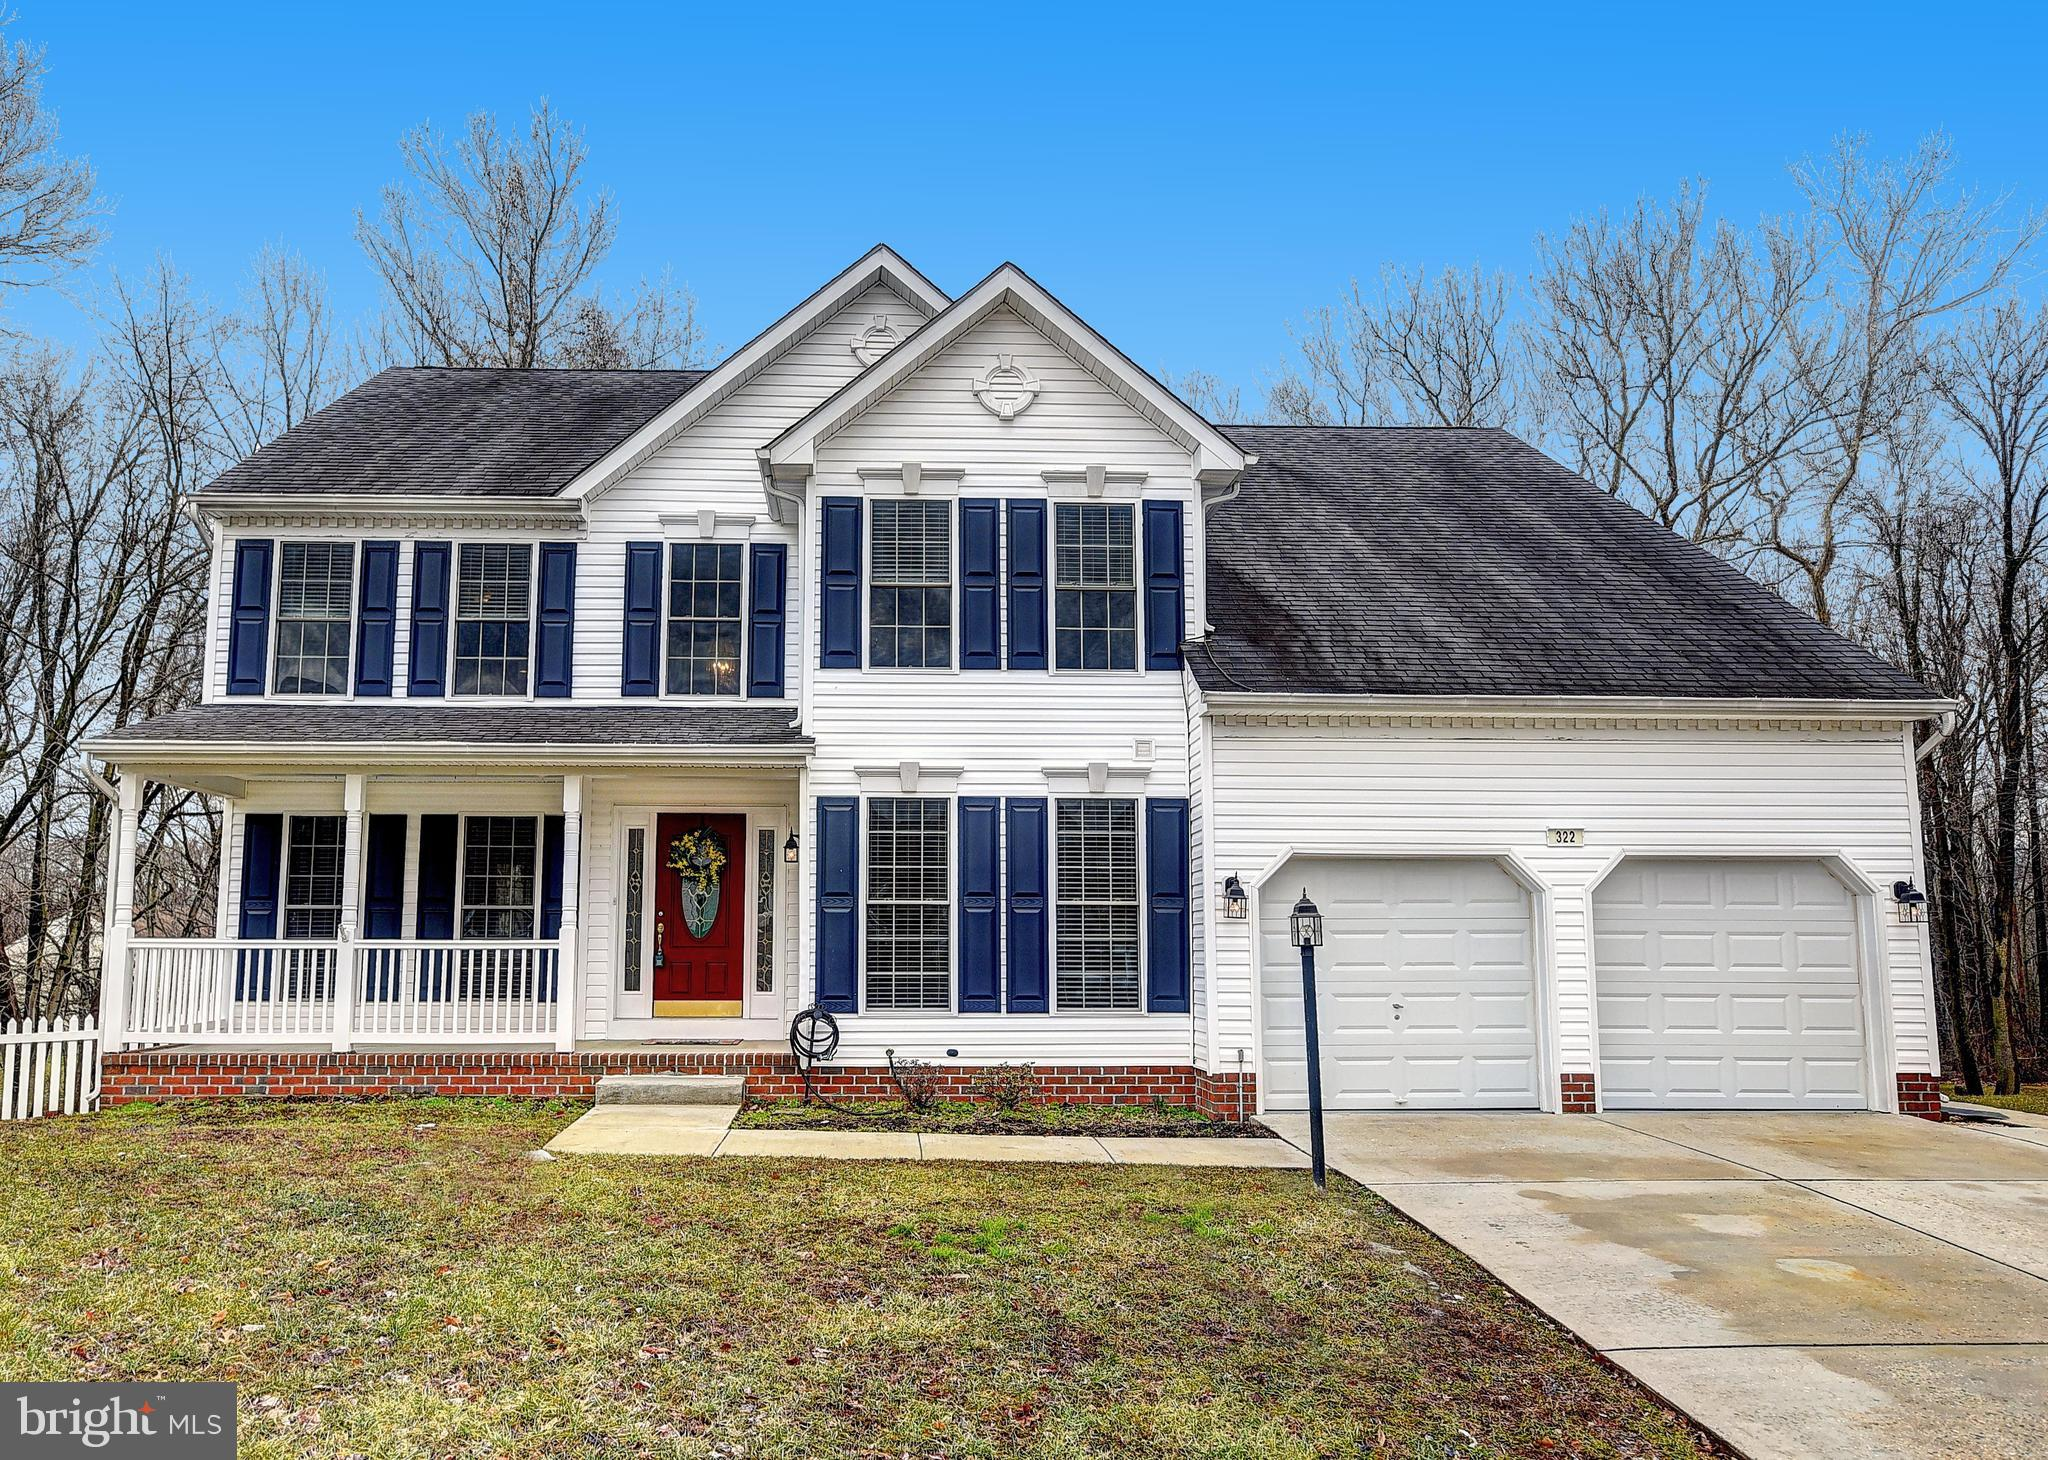 322 BEACON POINT DRIVE, PERRYVILLE, MD 21903